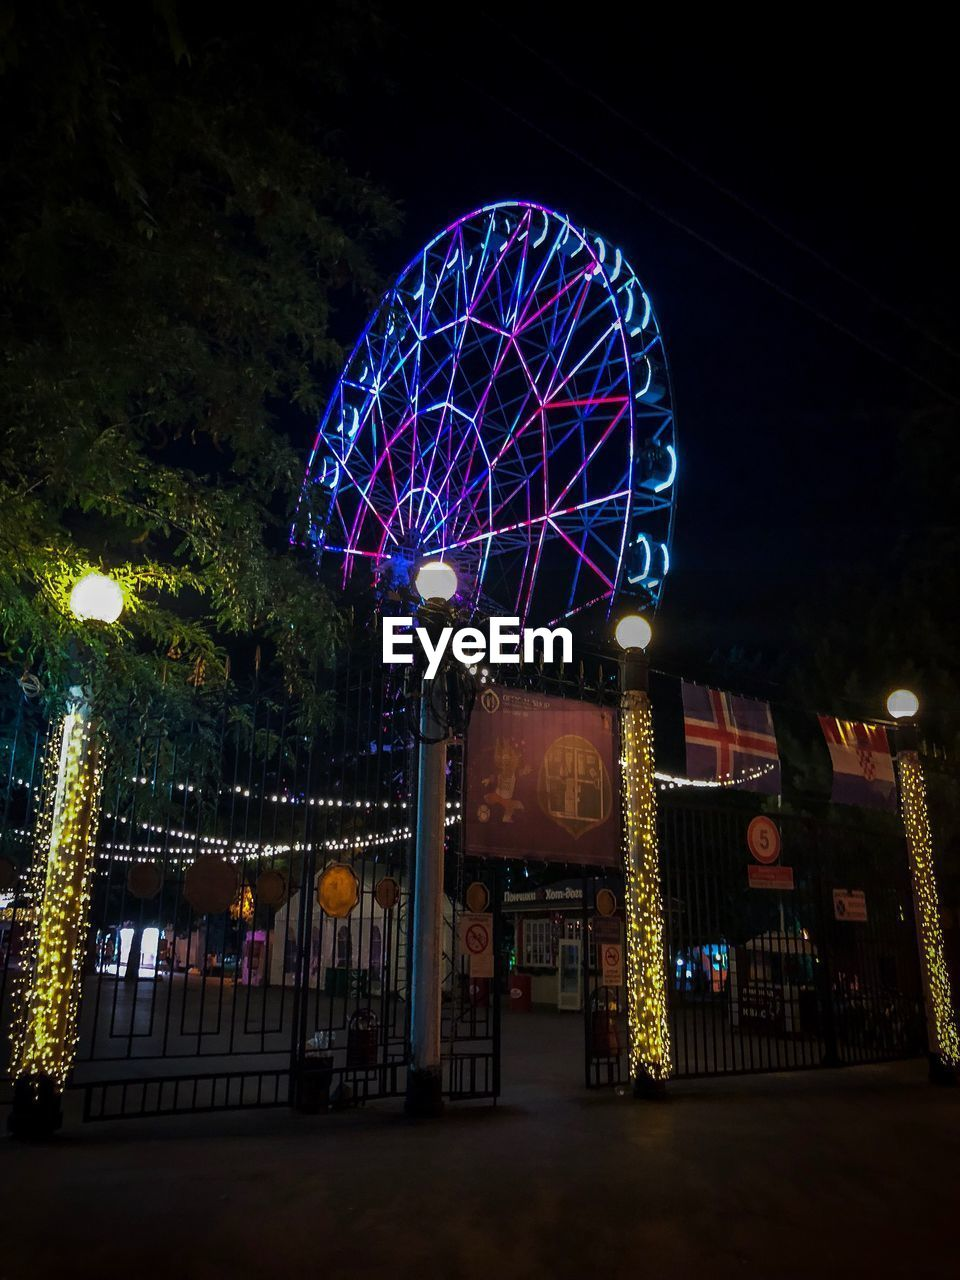 amusement park, night, amusement park ride, architecture, illuminated, built structure, ferris wheel, arts culture and entertainment, tree, no people, multi colored, low angle view, building exterior, sky, nature, plant, outdoors, circle, shape, dusk, fairground, nightlife